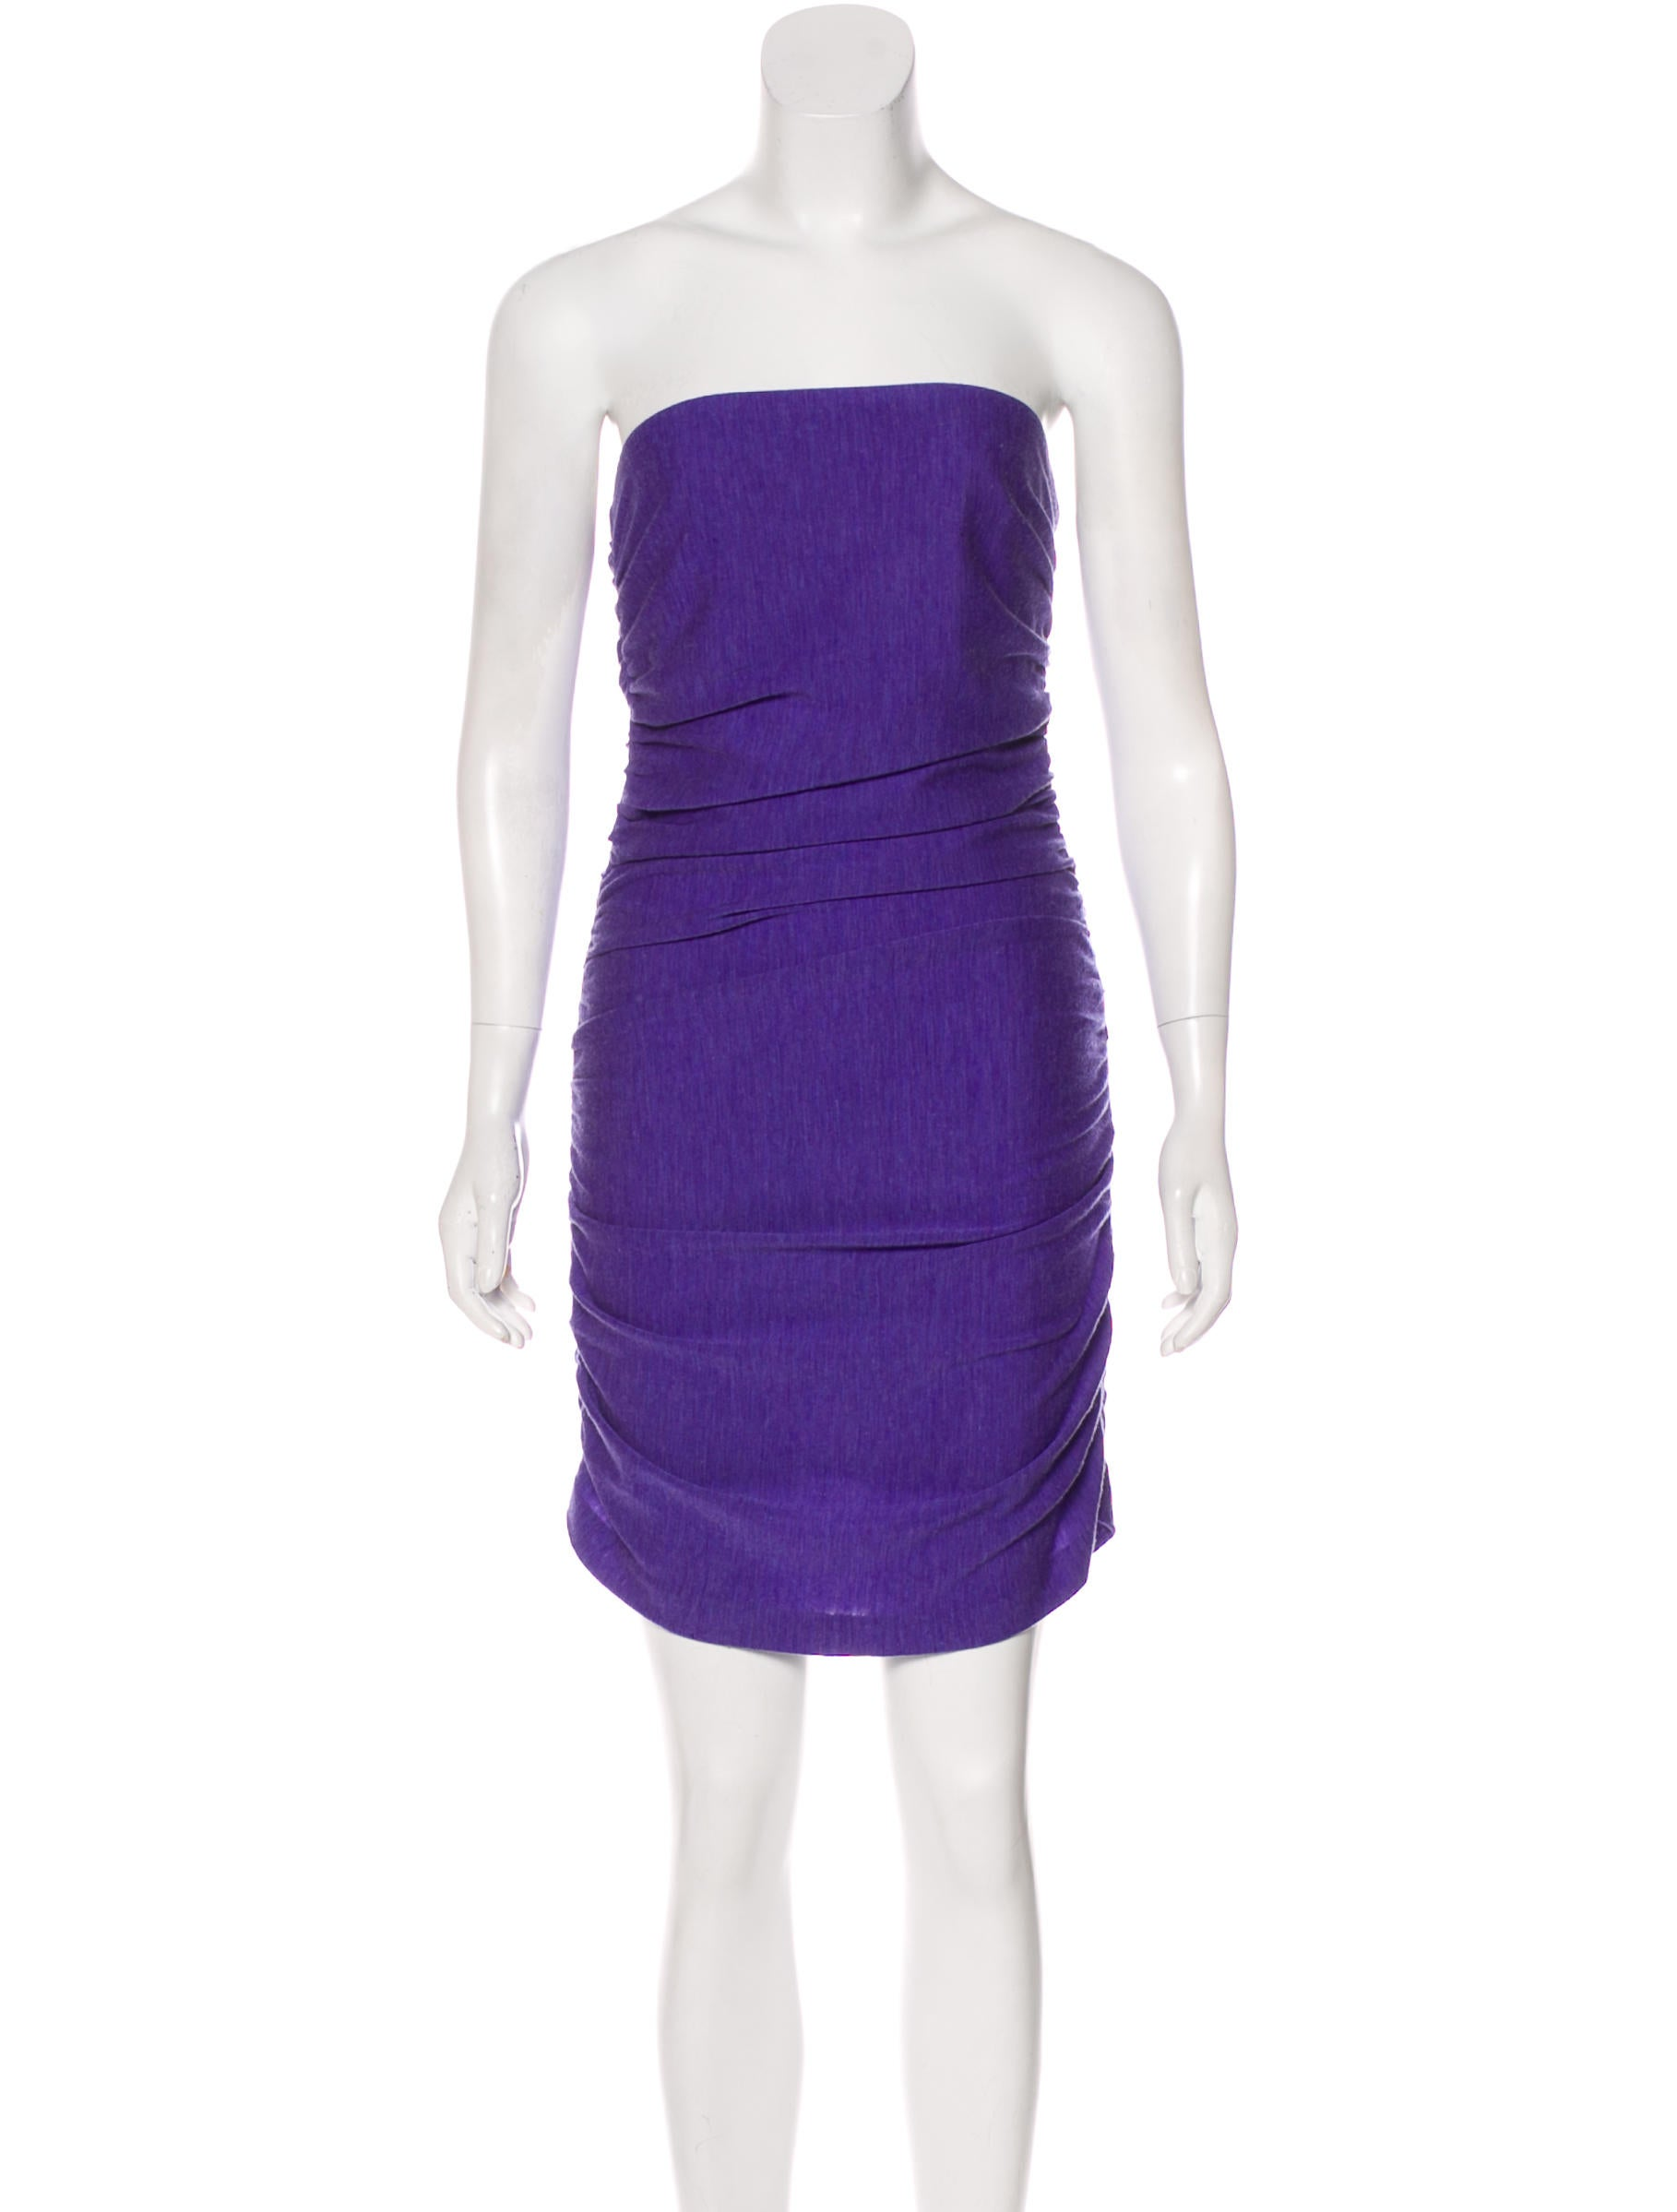 ff55f3bb762 Halston Heritage Wool Ruched Dress - Clothing - WH128950